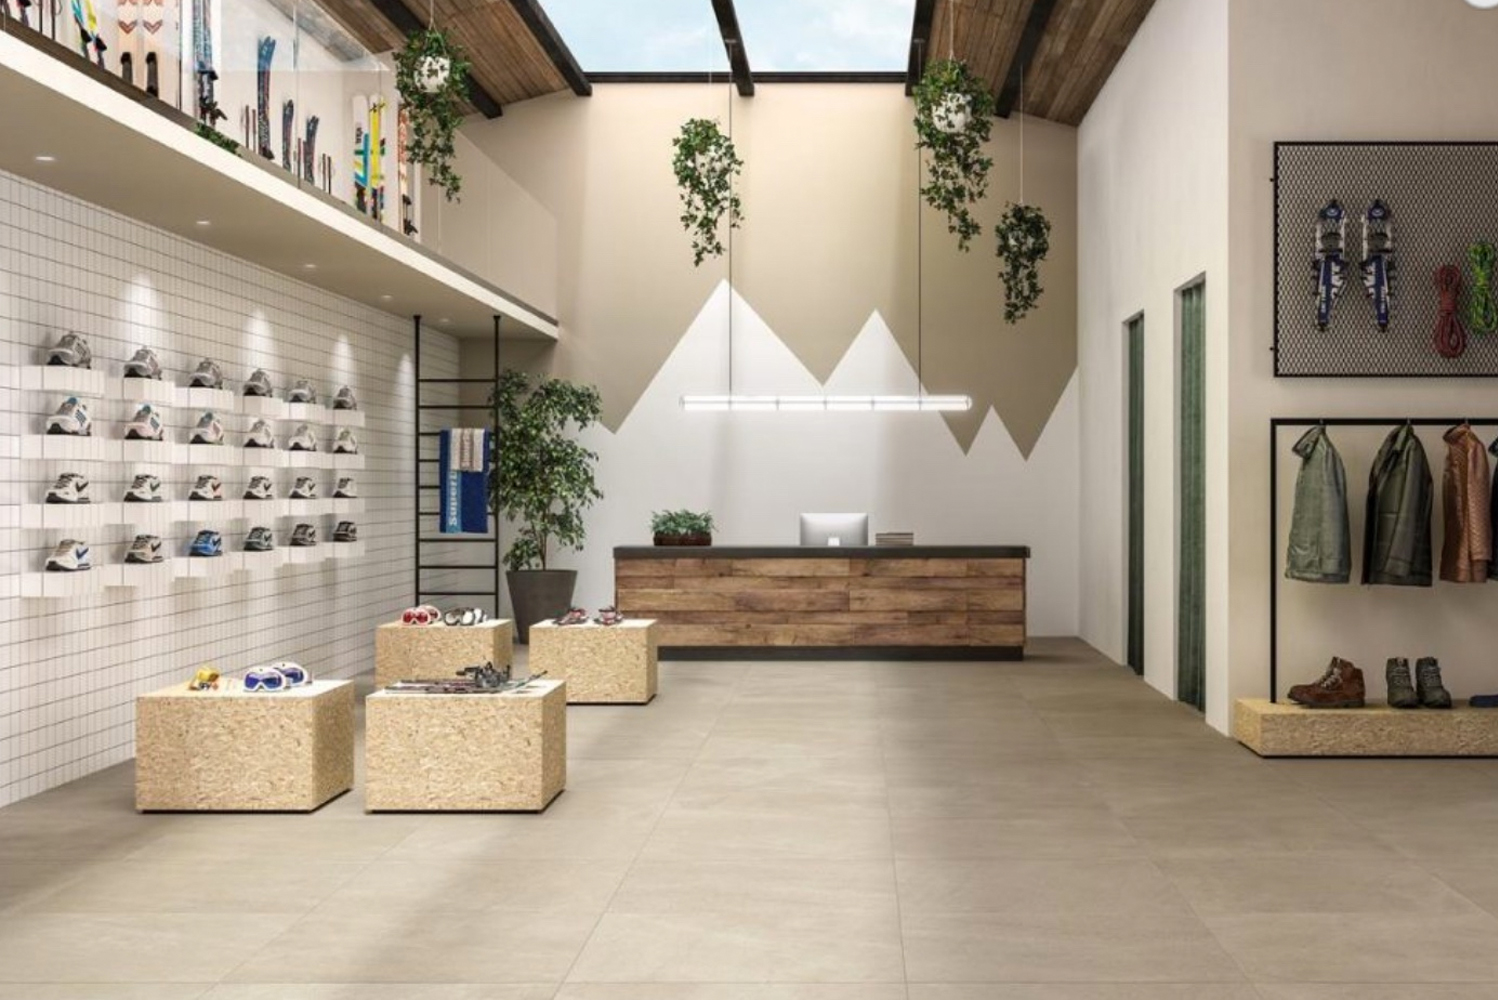 Blustyle launched the Yosemite collection of porcelain tiles.